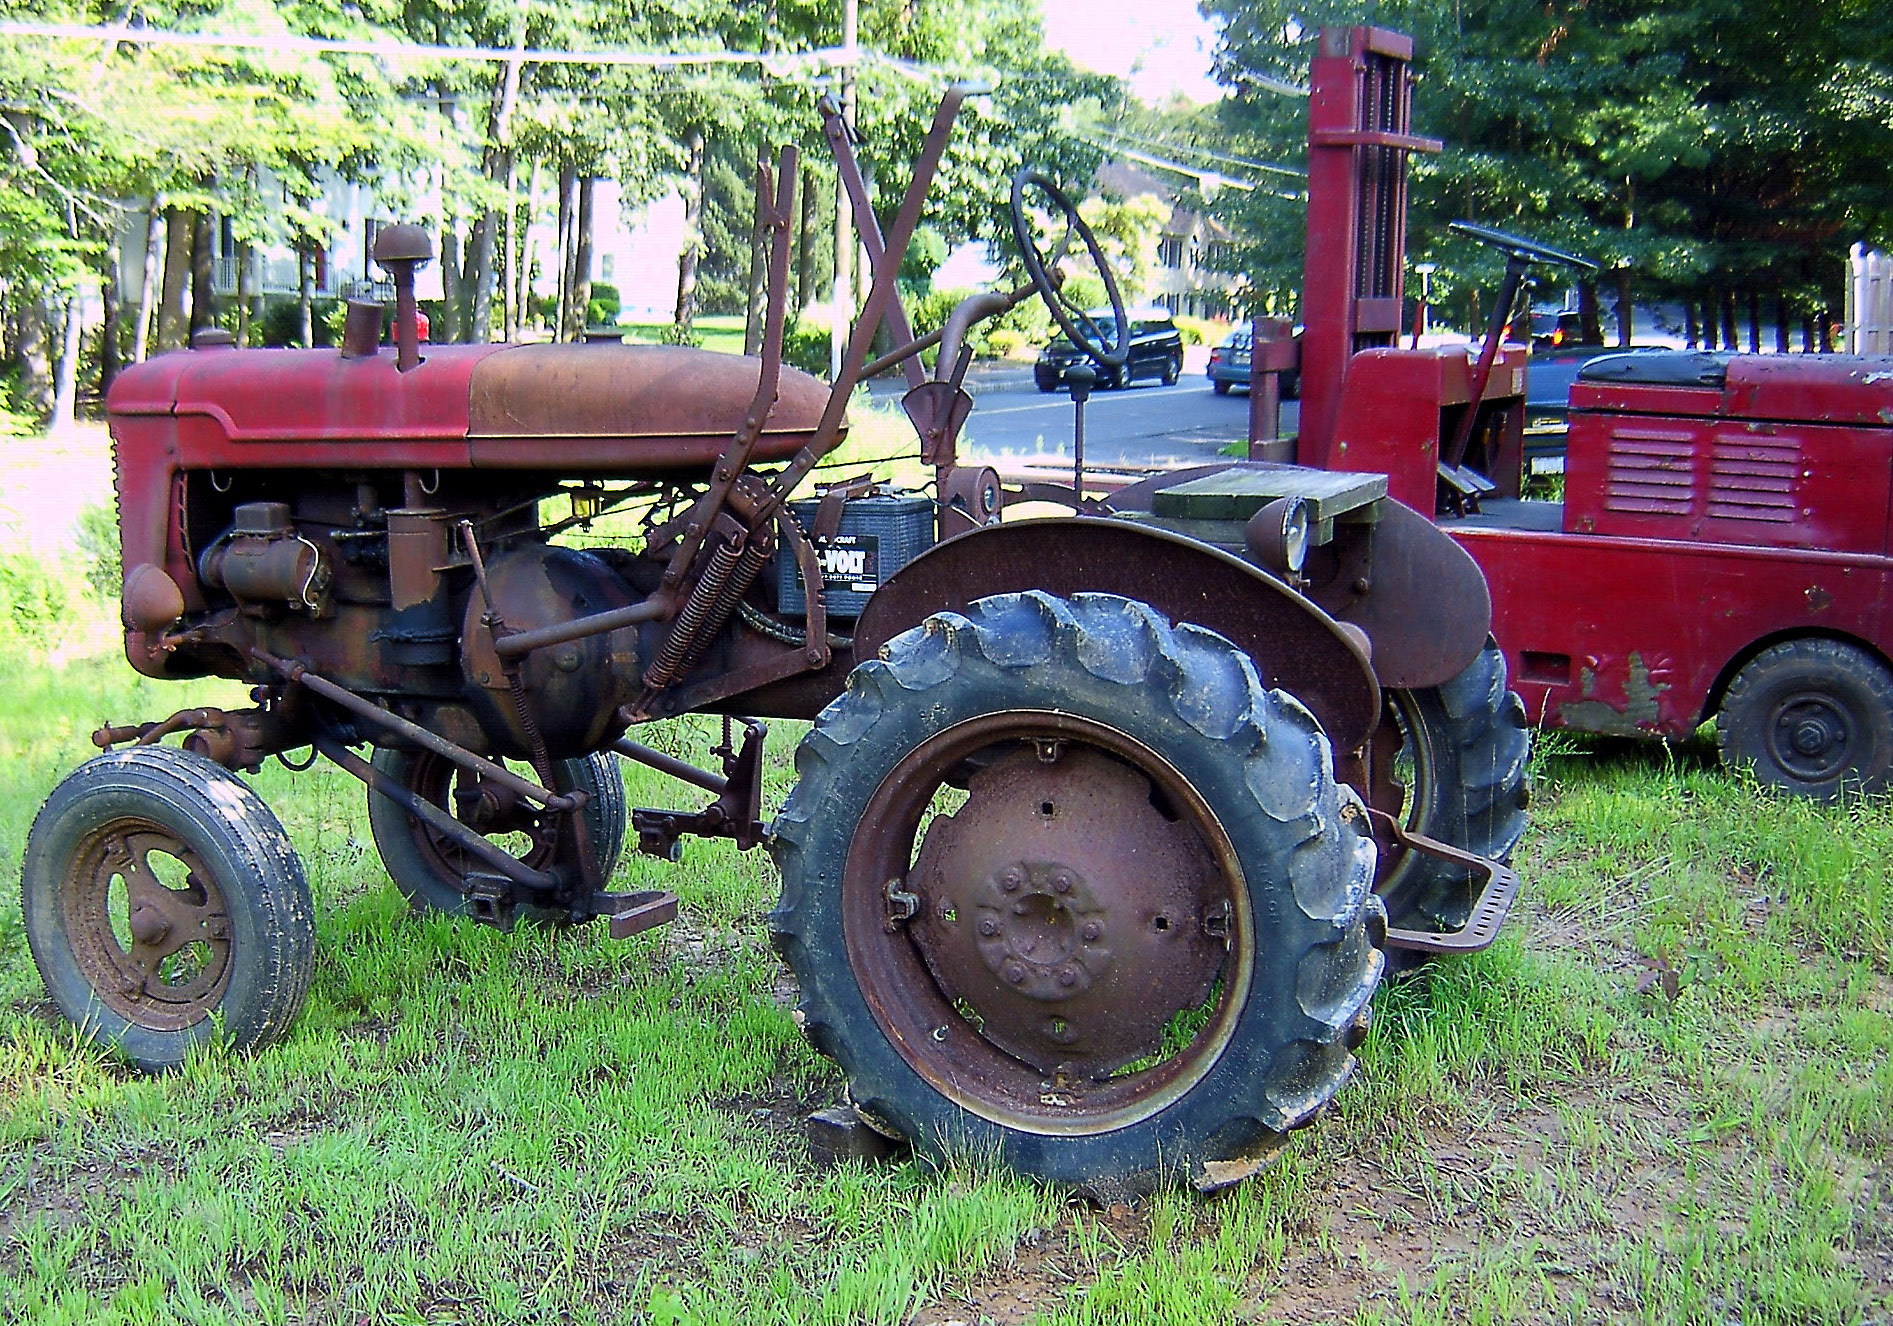 Old Gibson Tractors http://lovesphotoalbum.com/2011/08/25/antique-tractor-fork-lift-for-sale/